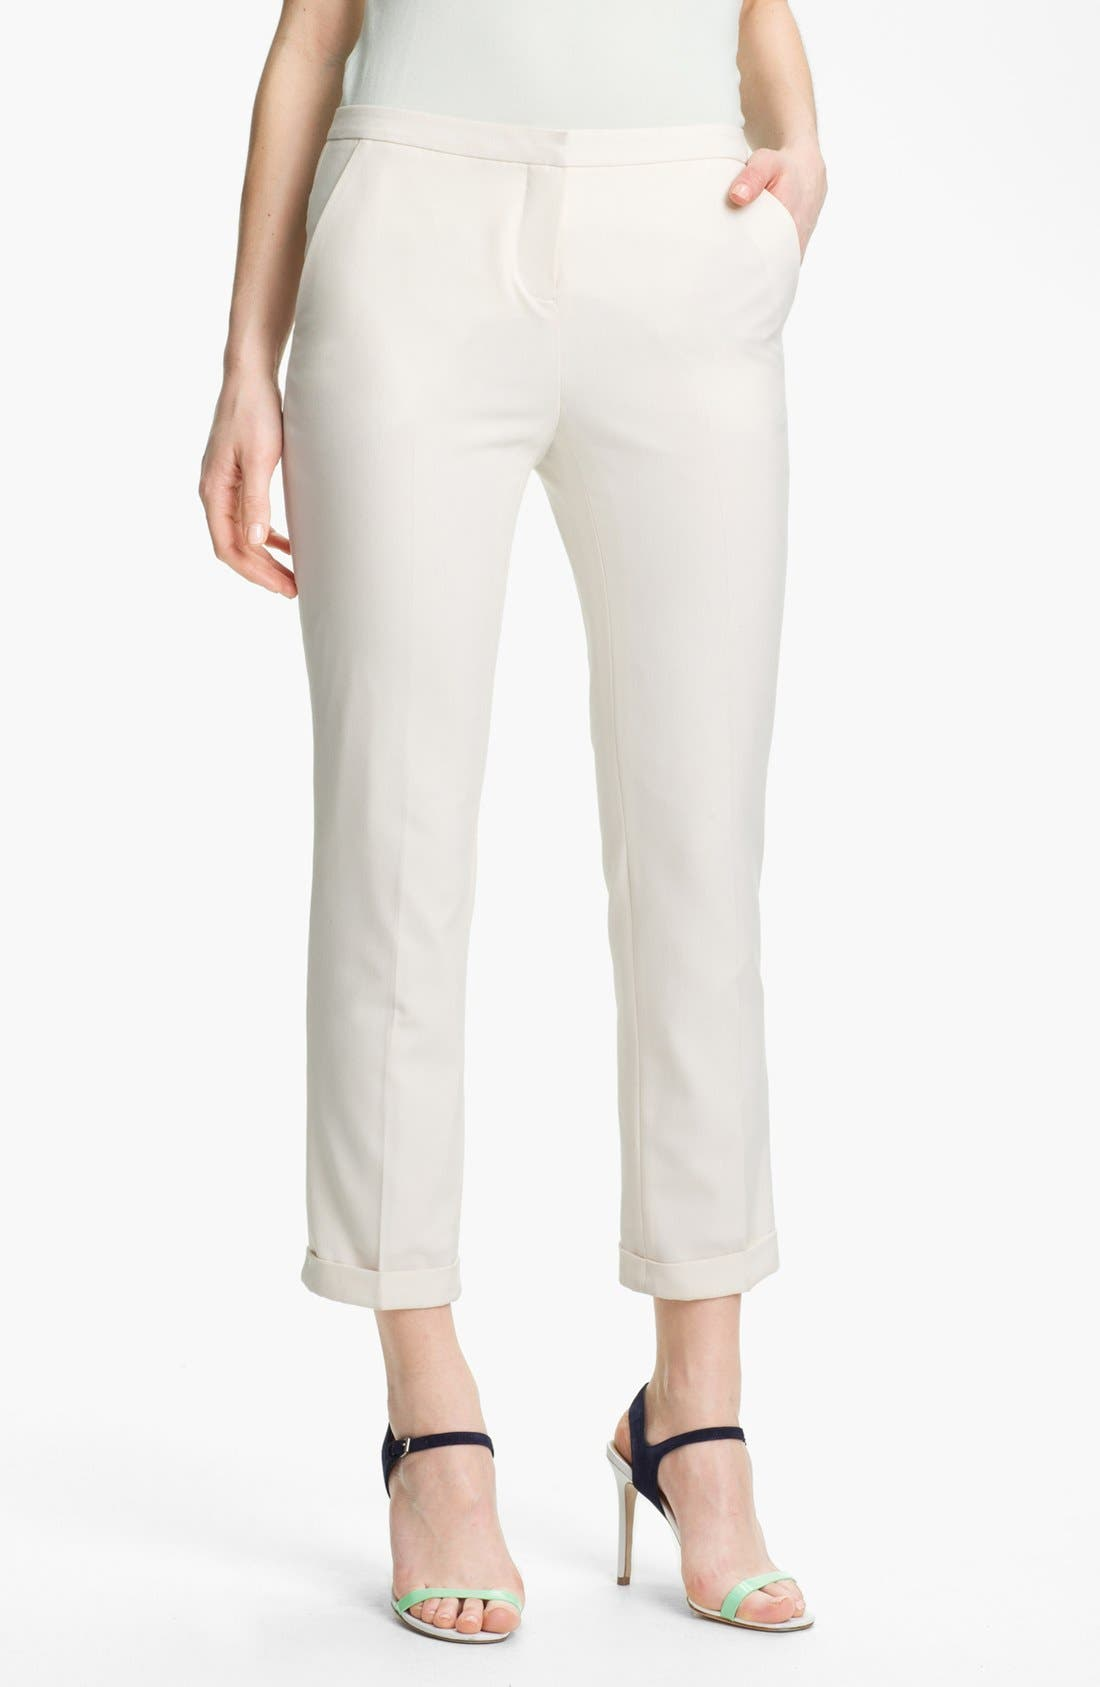 Main Image - Vince Camuto Cuffed Skinny Ankle Pants